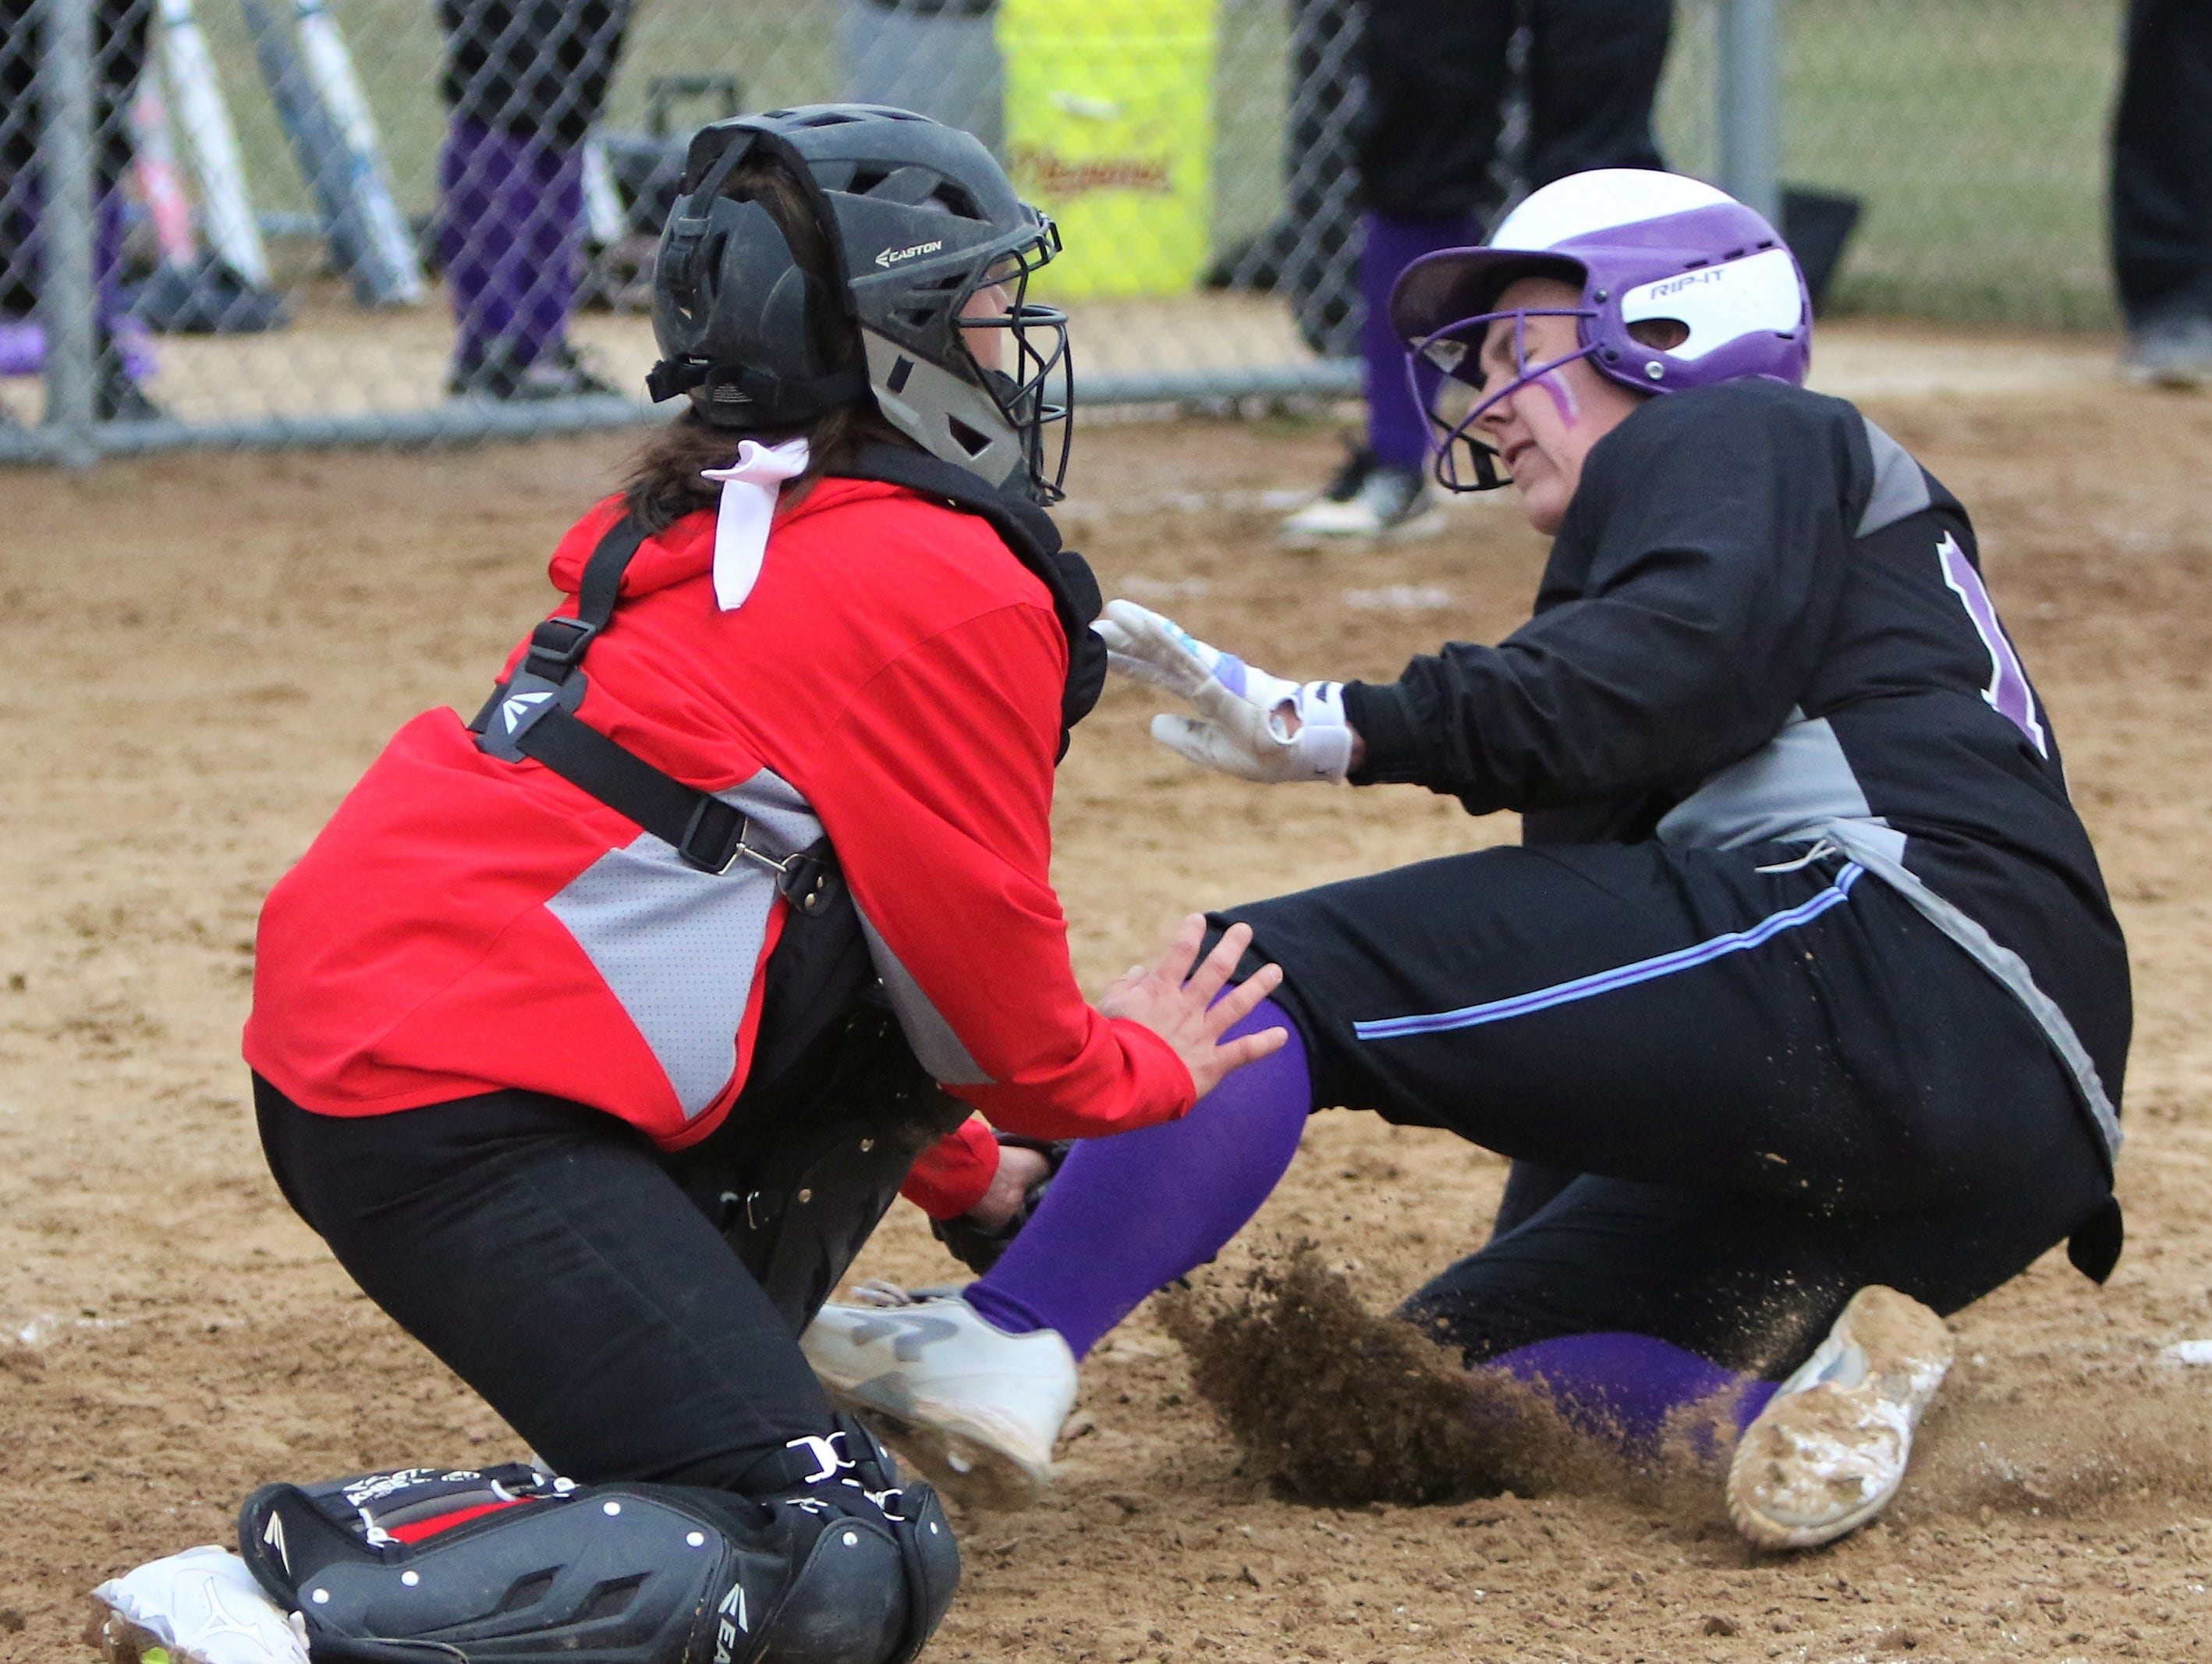 Waukesha North senior Maddy Anderson is tagged out at home plate against Muskego on April 12, 2019.